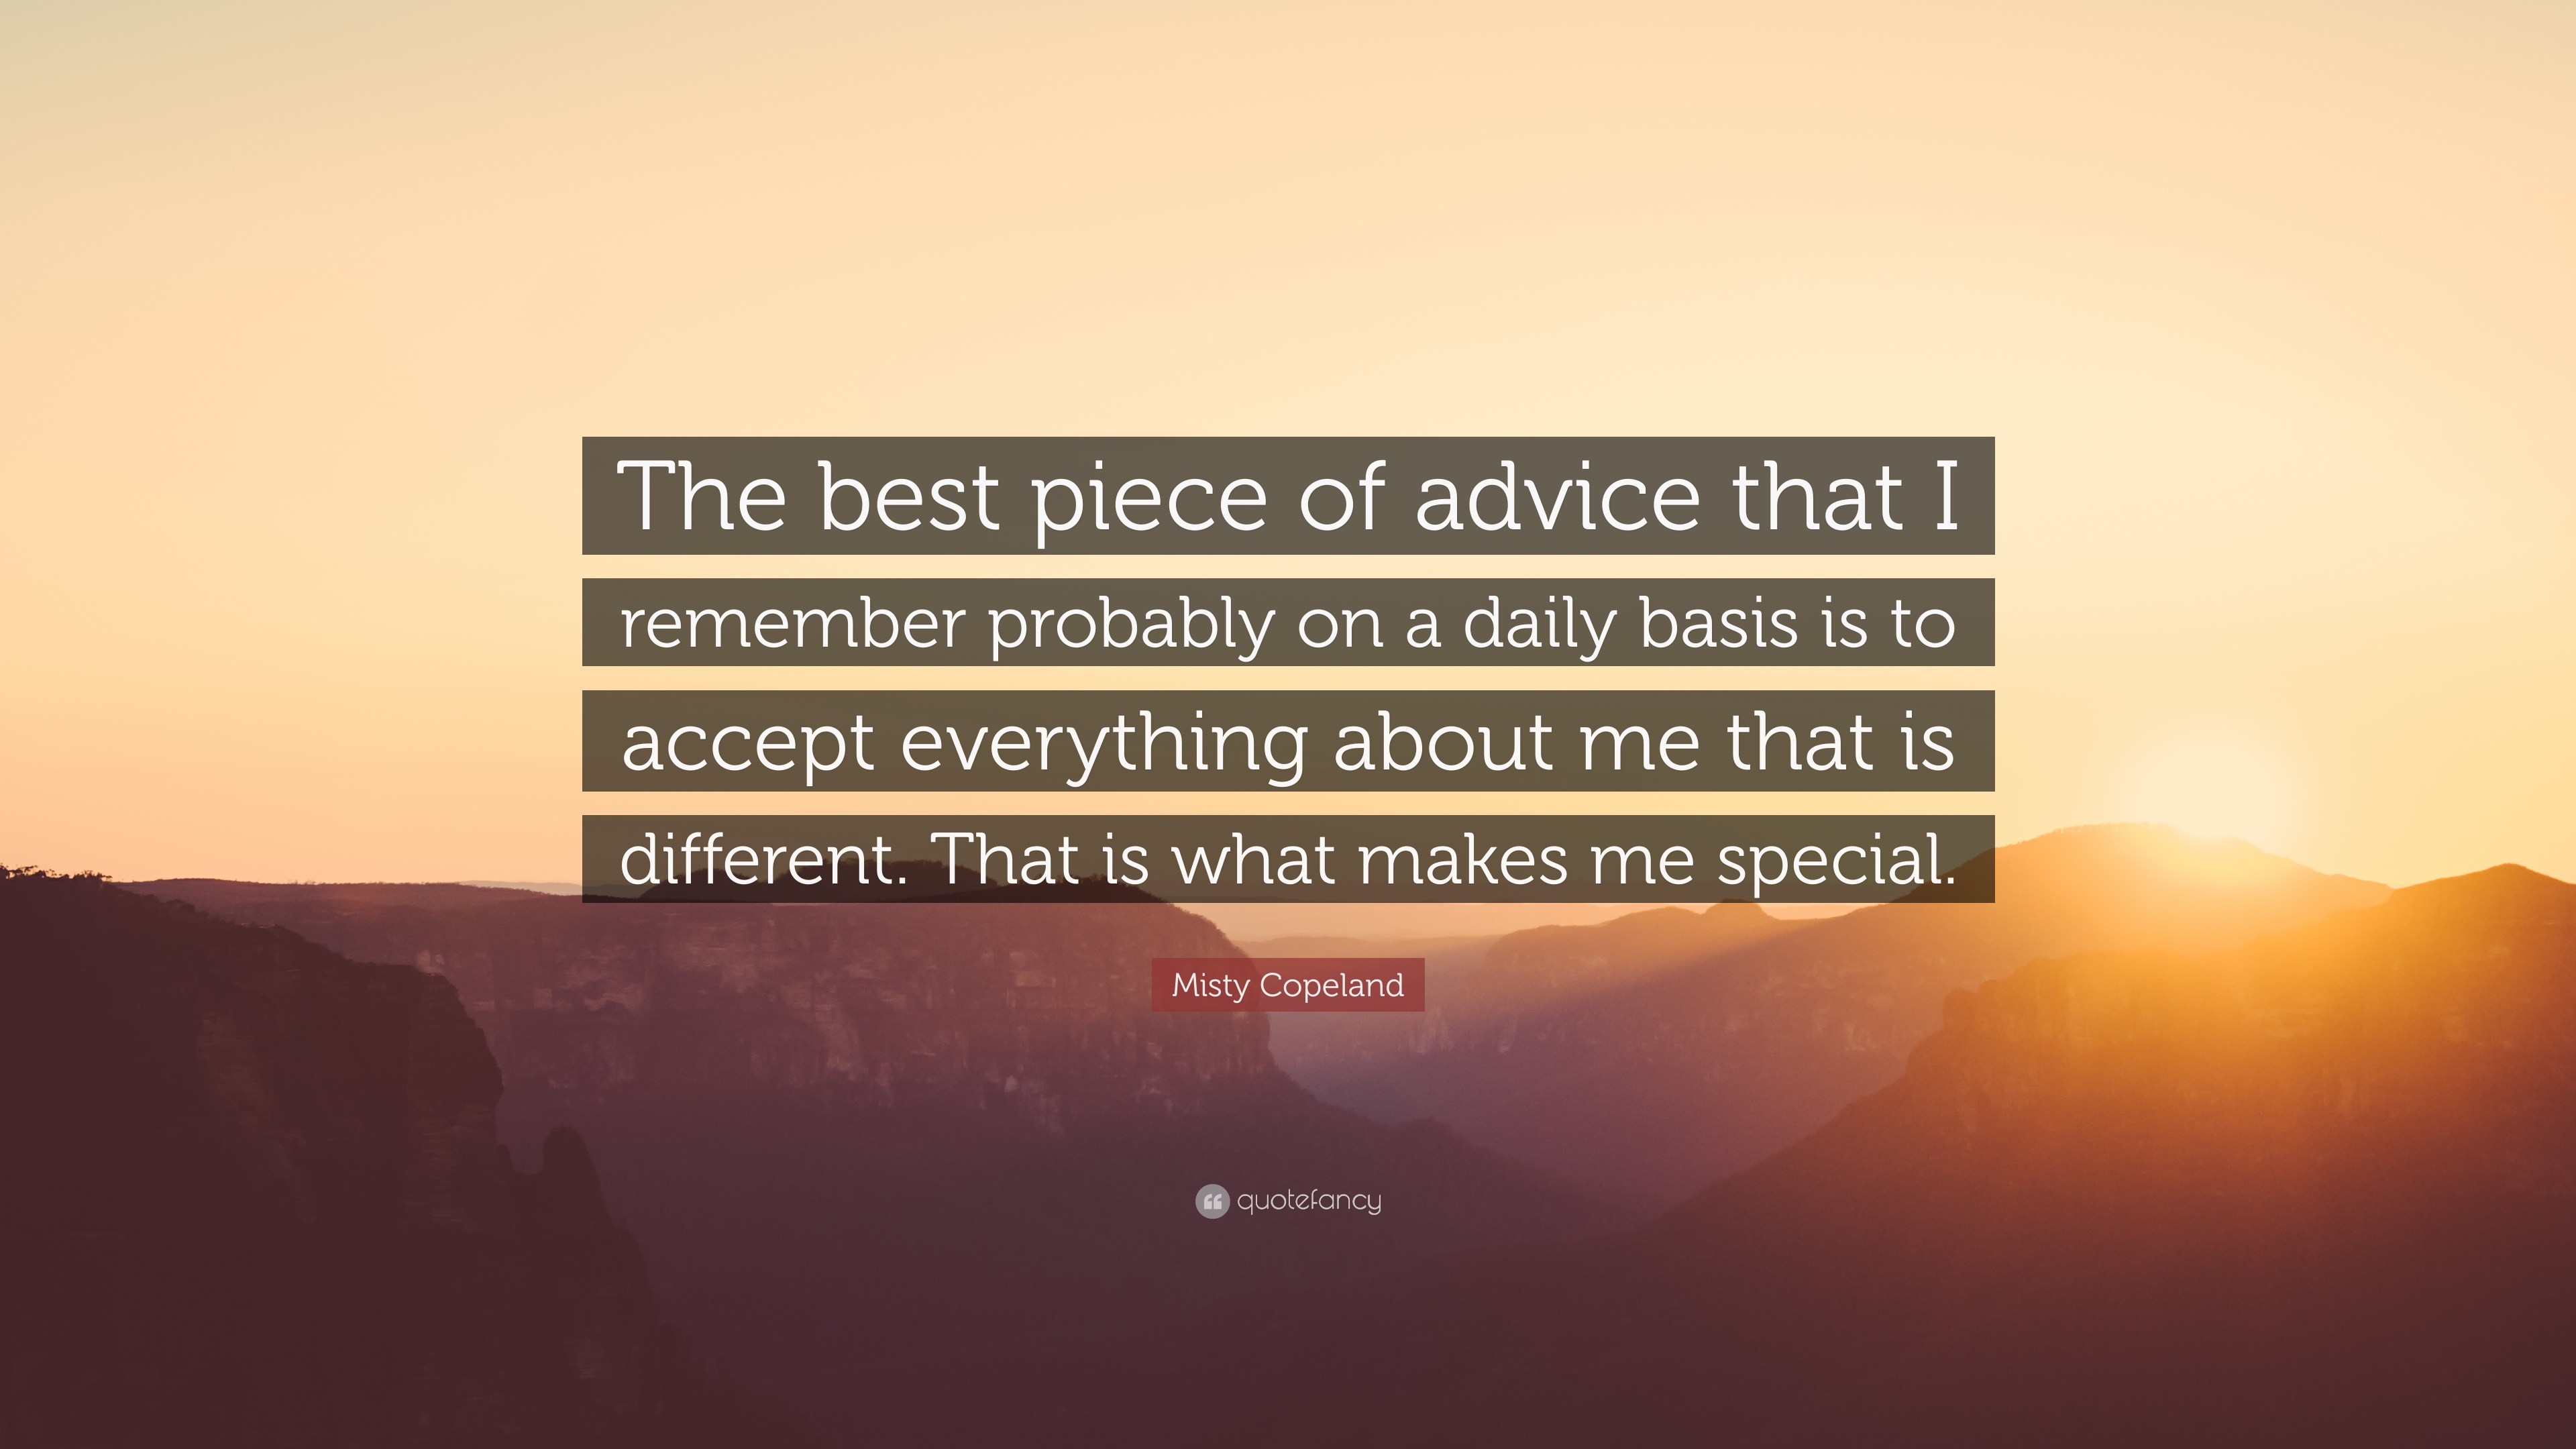 Which piece of advice/quote is the best?